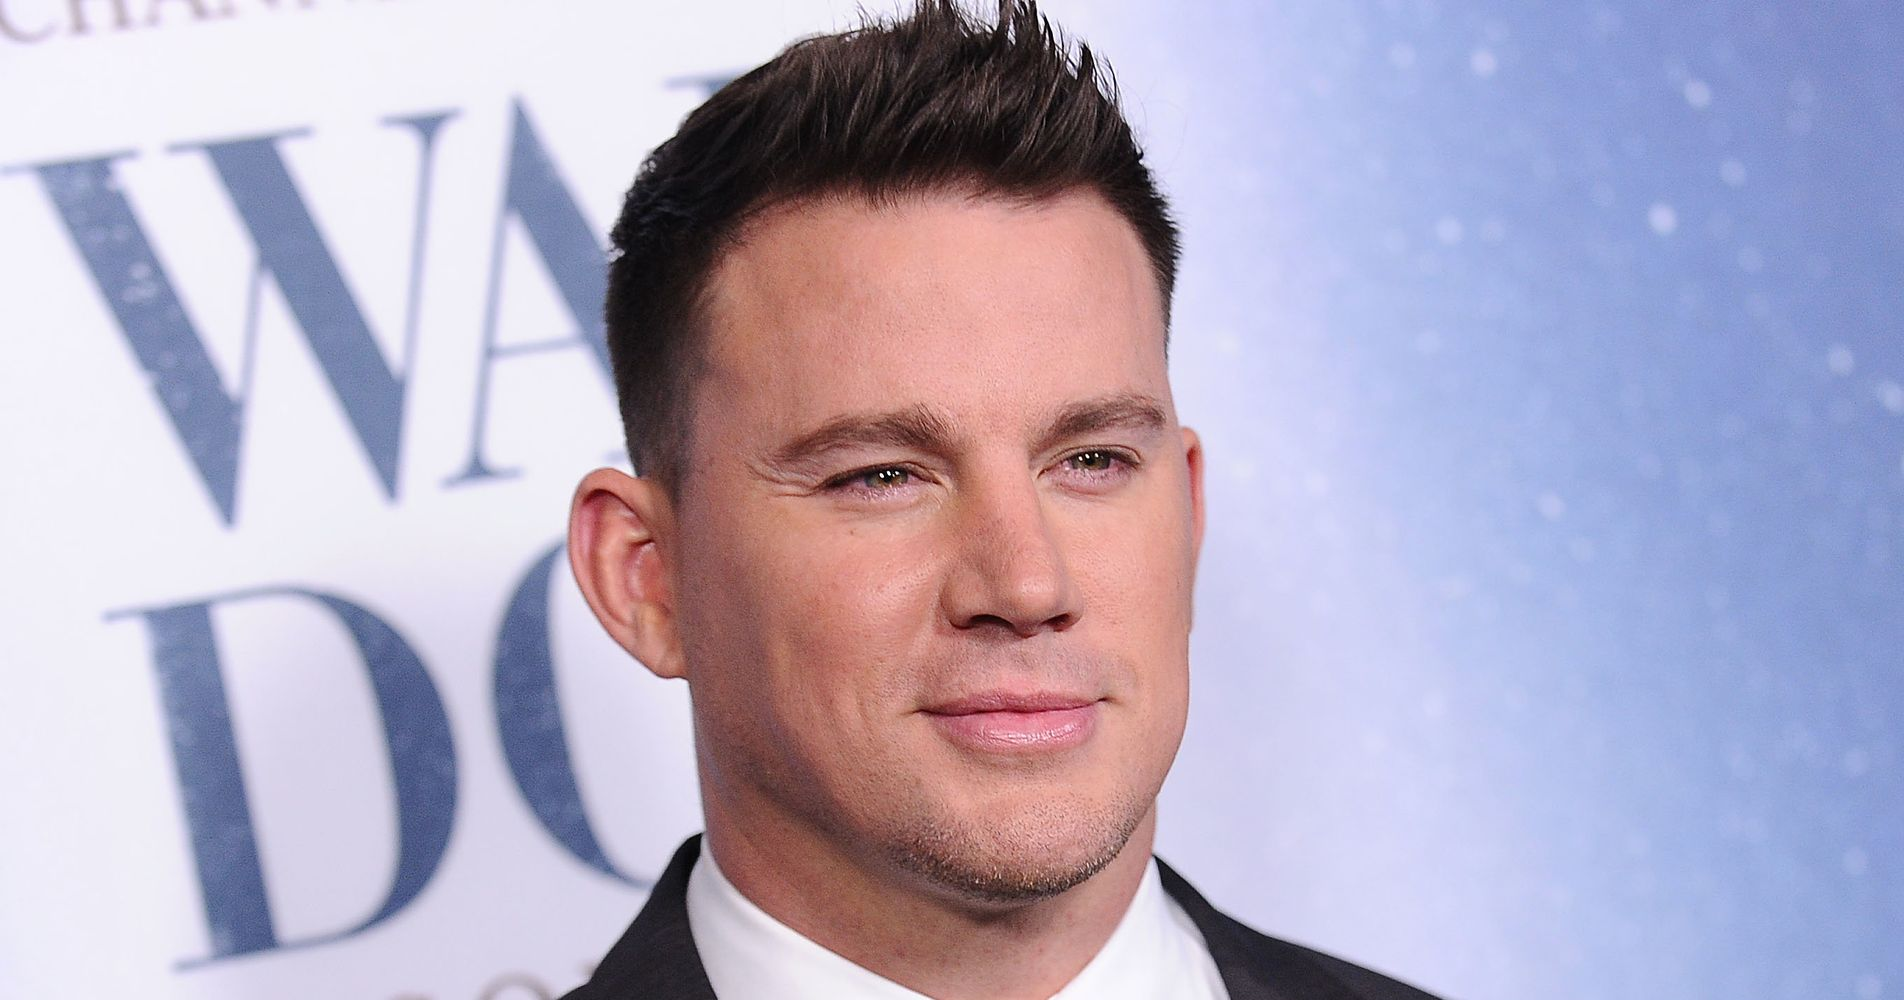 Alabama Native Channing Tatum Encourages Followers Not To Vote For Roy  Moore | HuffPost